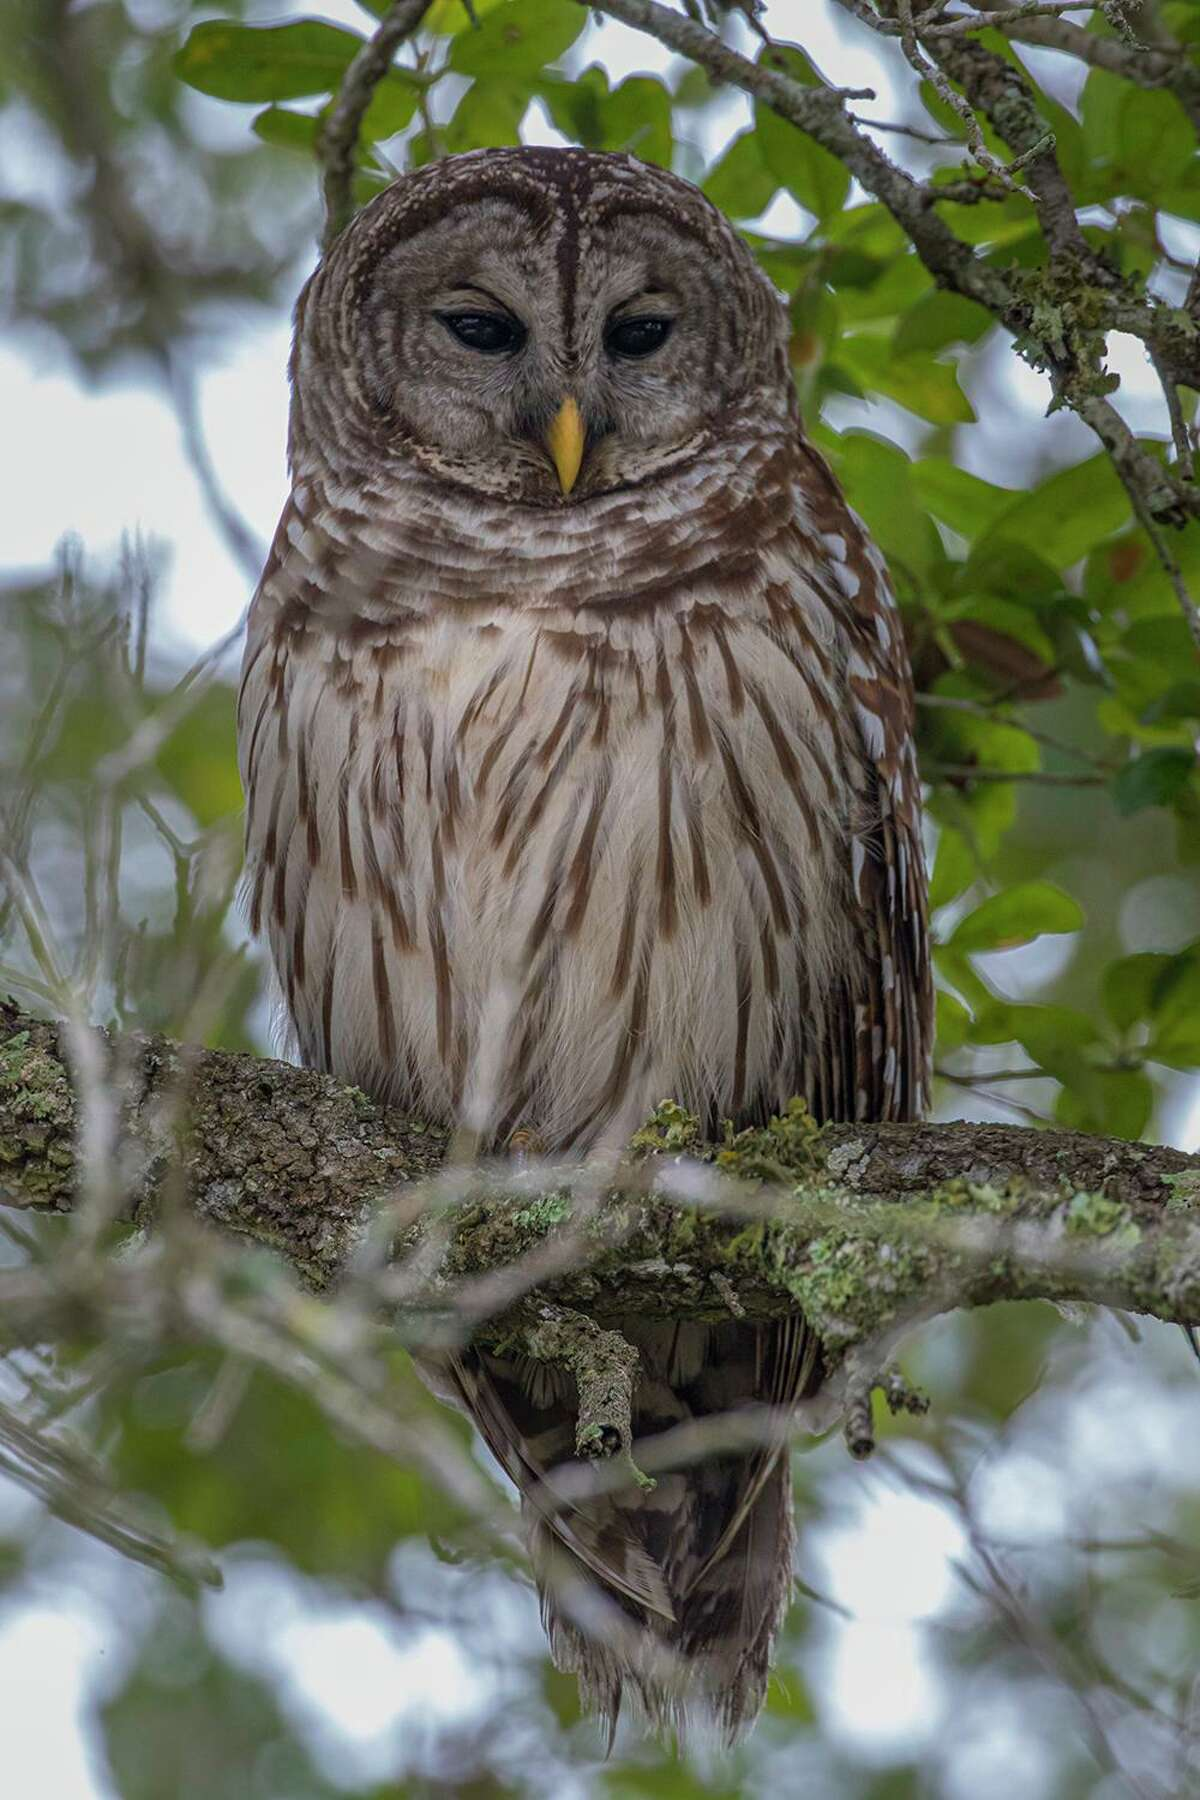 The barred owl will see you this Halloween night but you won't see it. Photo Credit: Kathy Adams Clark Restricted use.